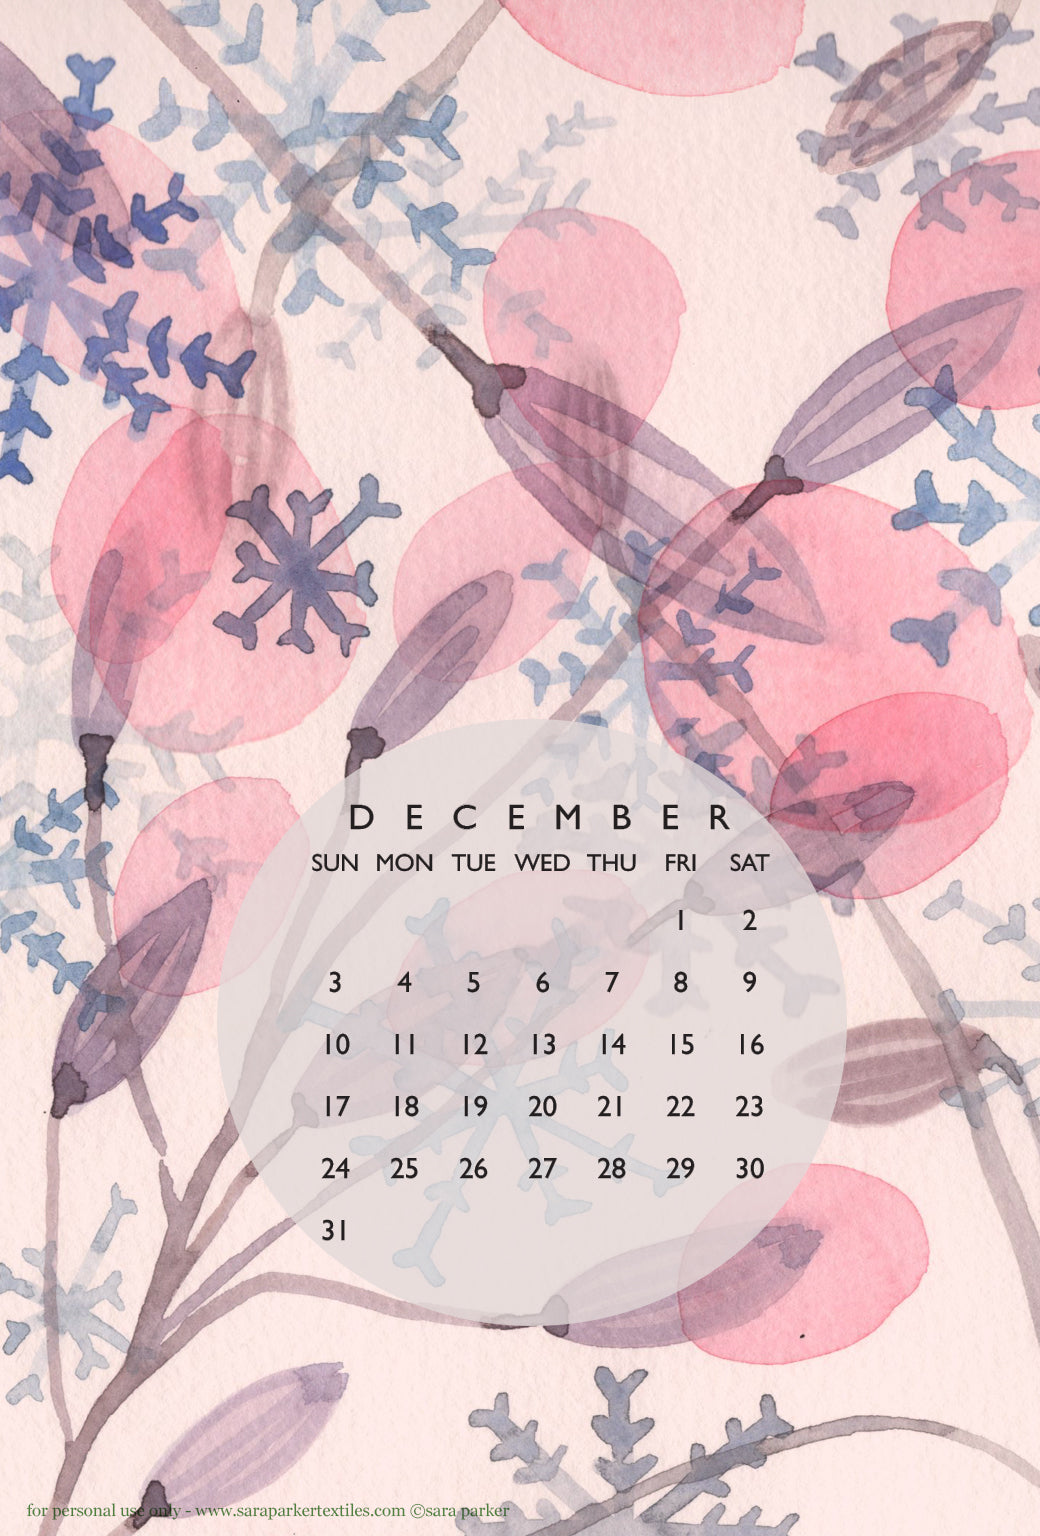 Sugarplums and snowdrops! Free phone calendar wallpaper for download by Sara Parker.